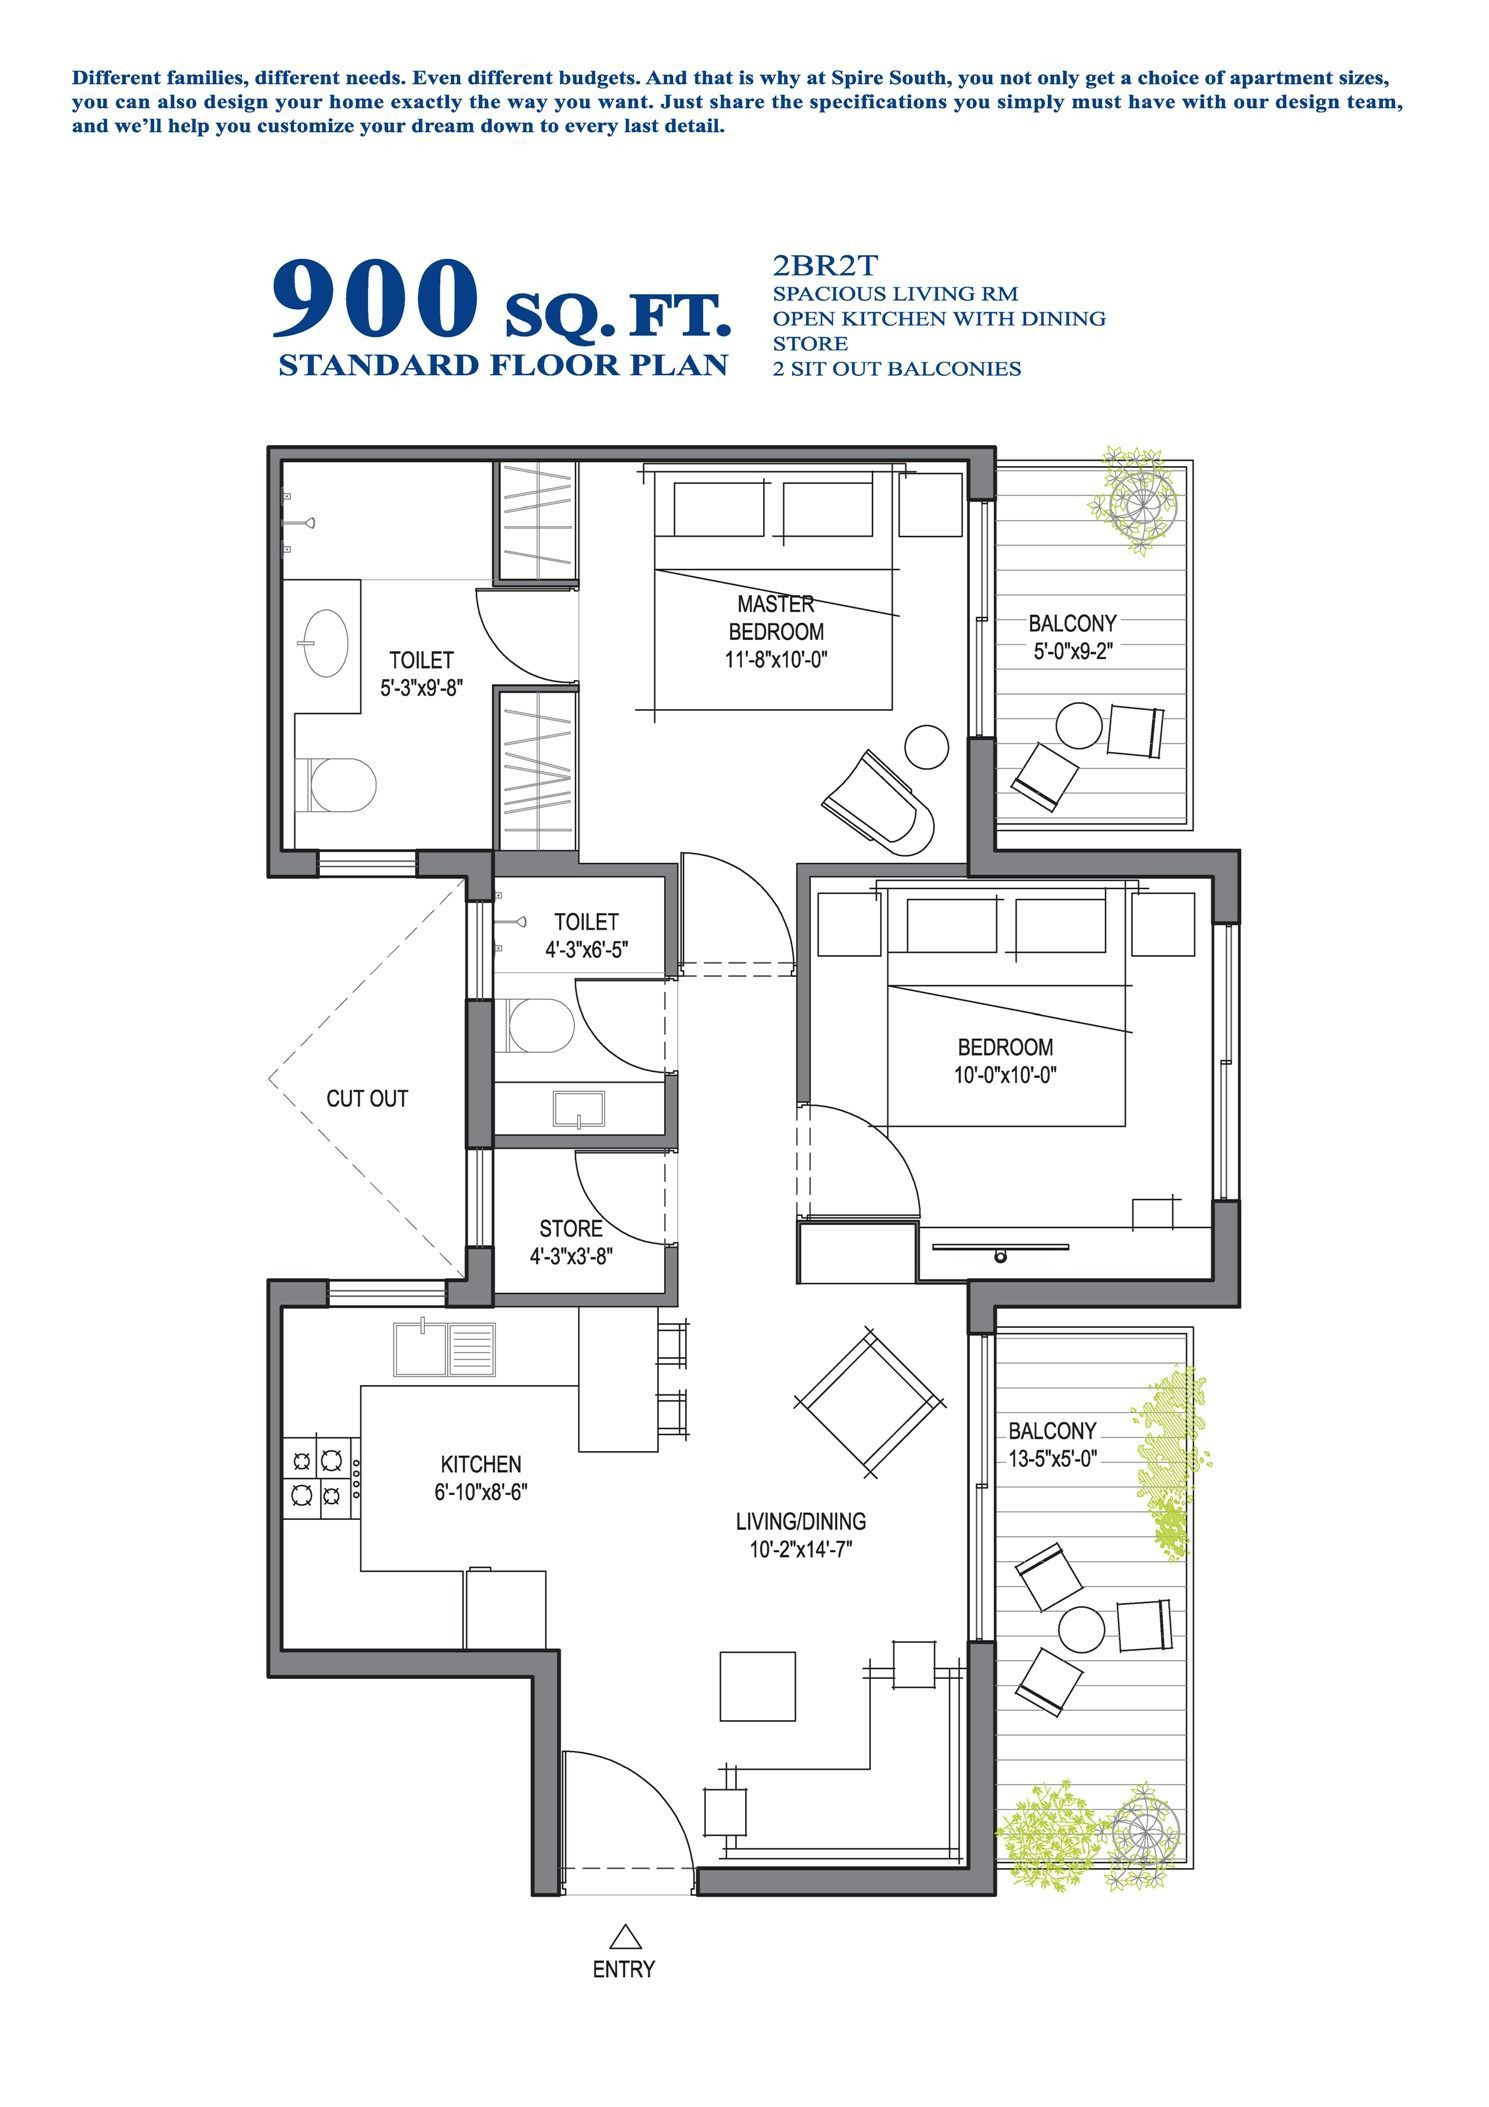 Small House Plans Under 700 Sq Ft Awesome Fashionable Design Ideas 700 Sq Ft House Plans with Car